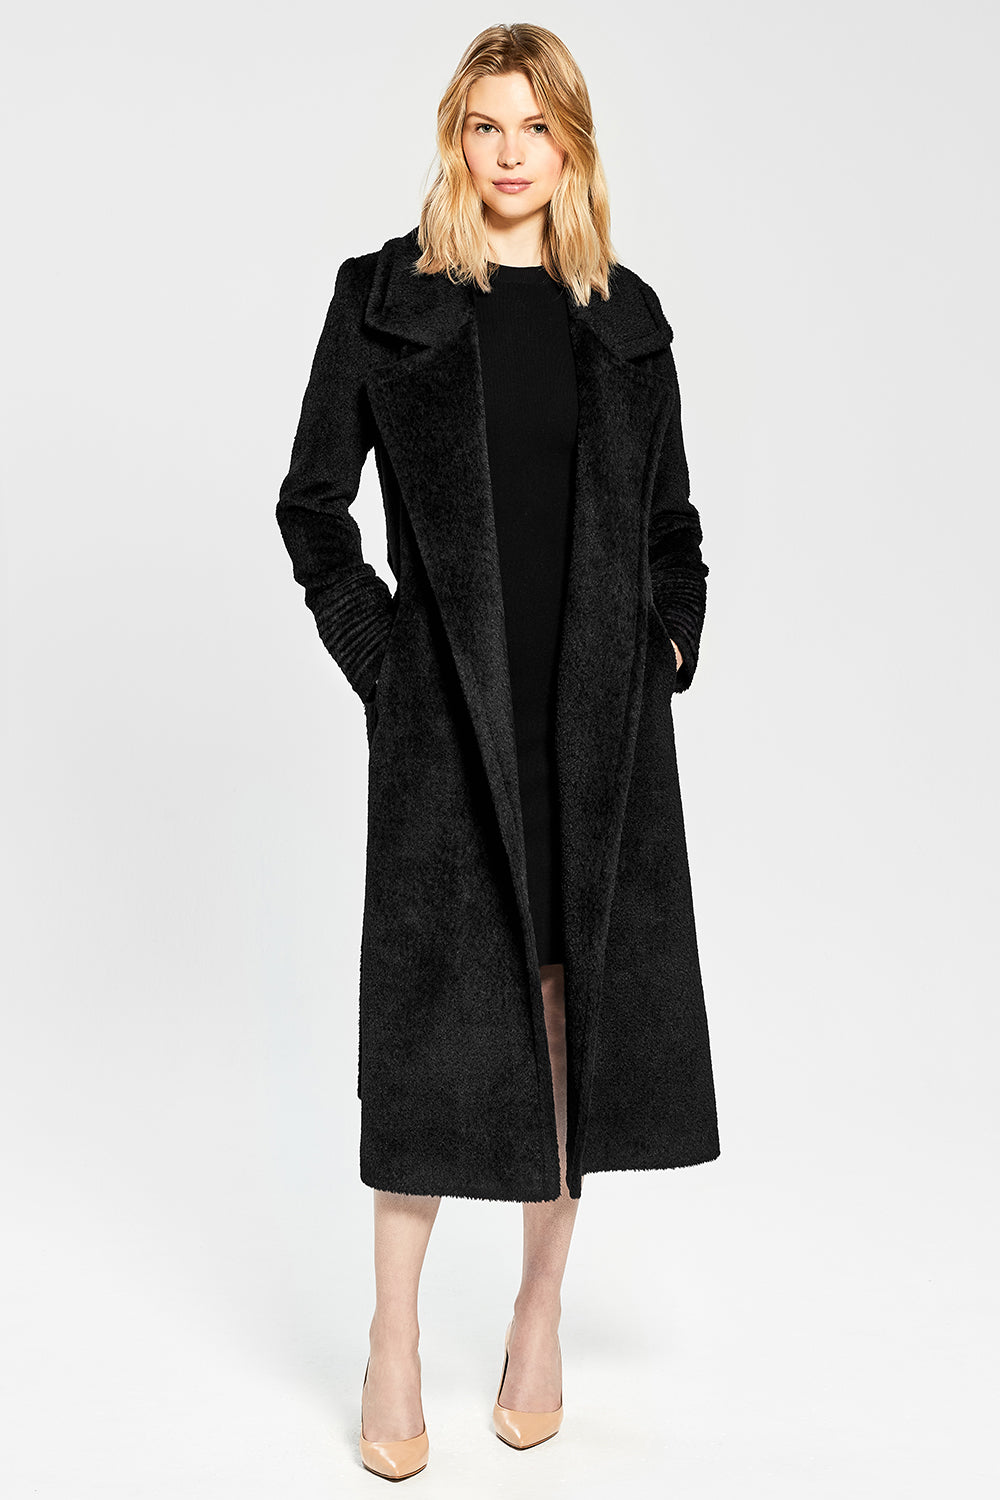 Sentaler Bouclé Alpaca Long Notched Collar Wrap Coat featured in Bouclé Alpaca and available in Black. Seen open.